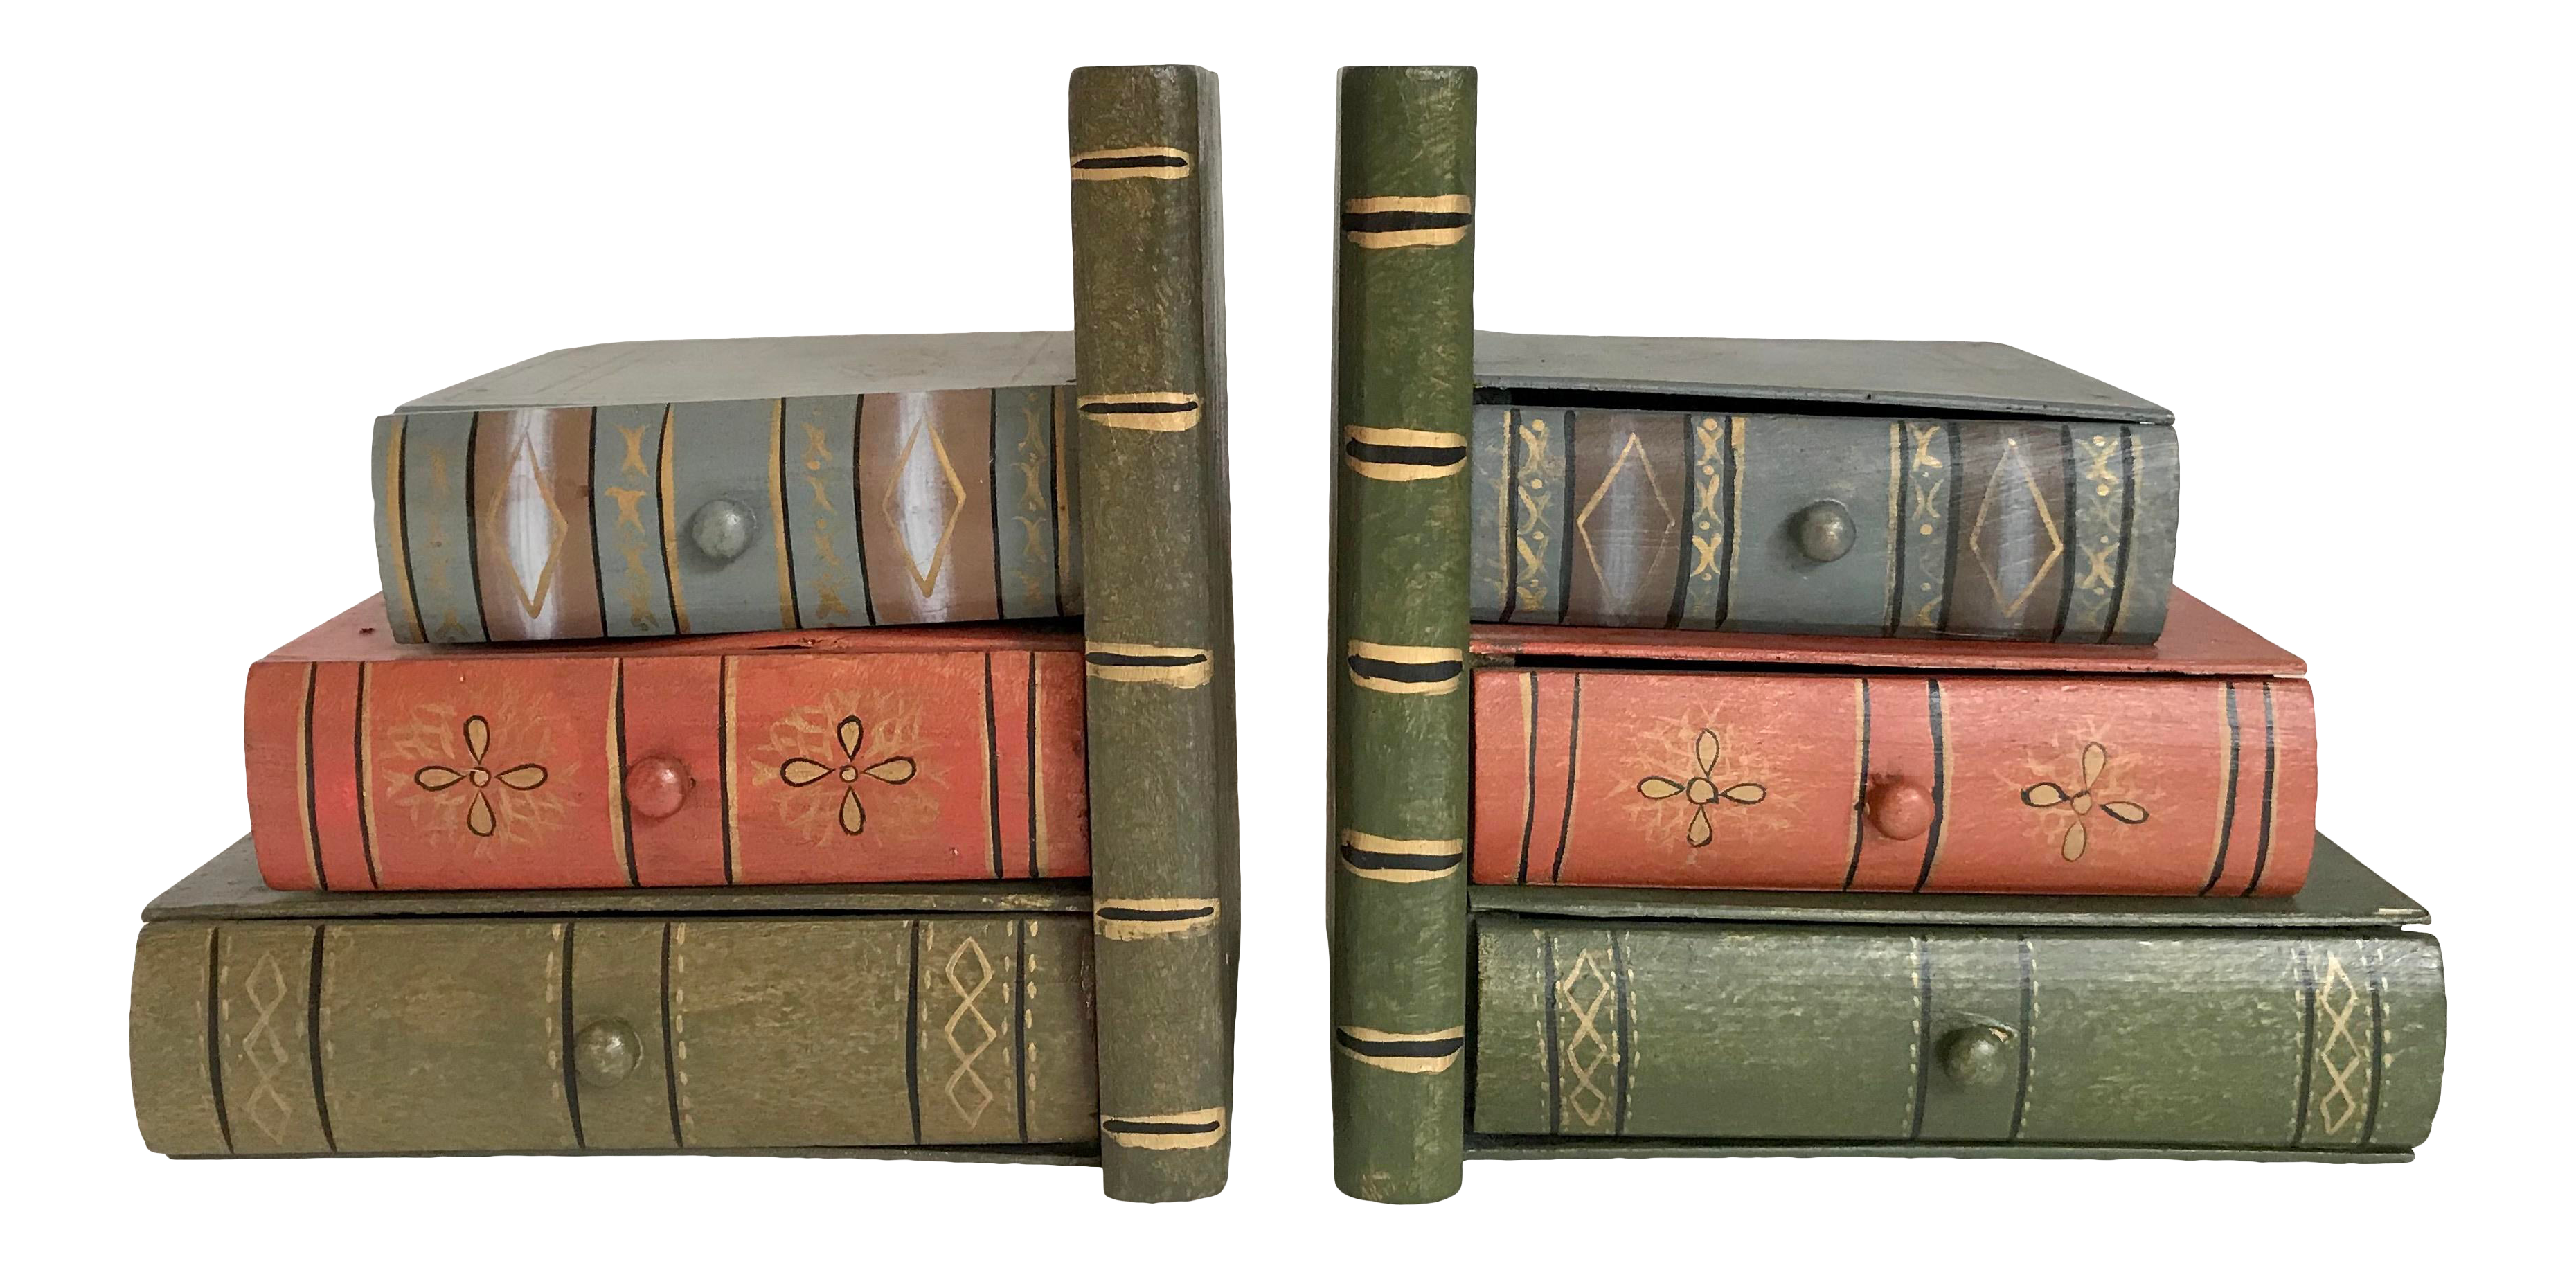 2 Antique Gold Hand Bookend Home Shelve Art Decor Book Stand Ornament Display